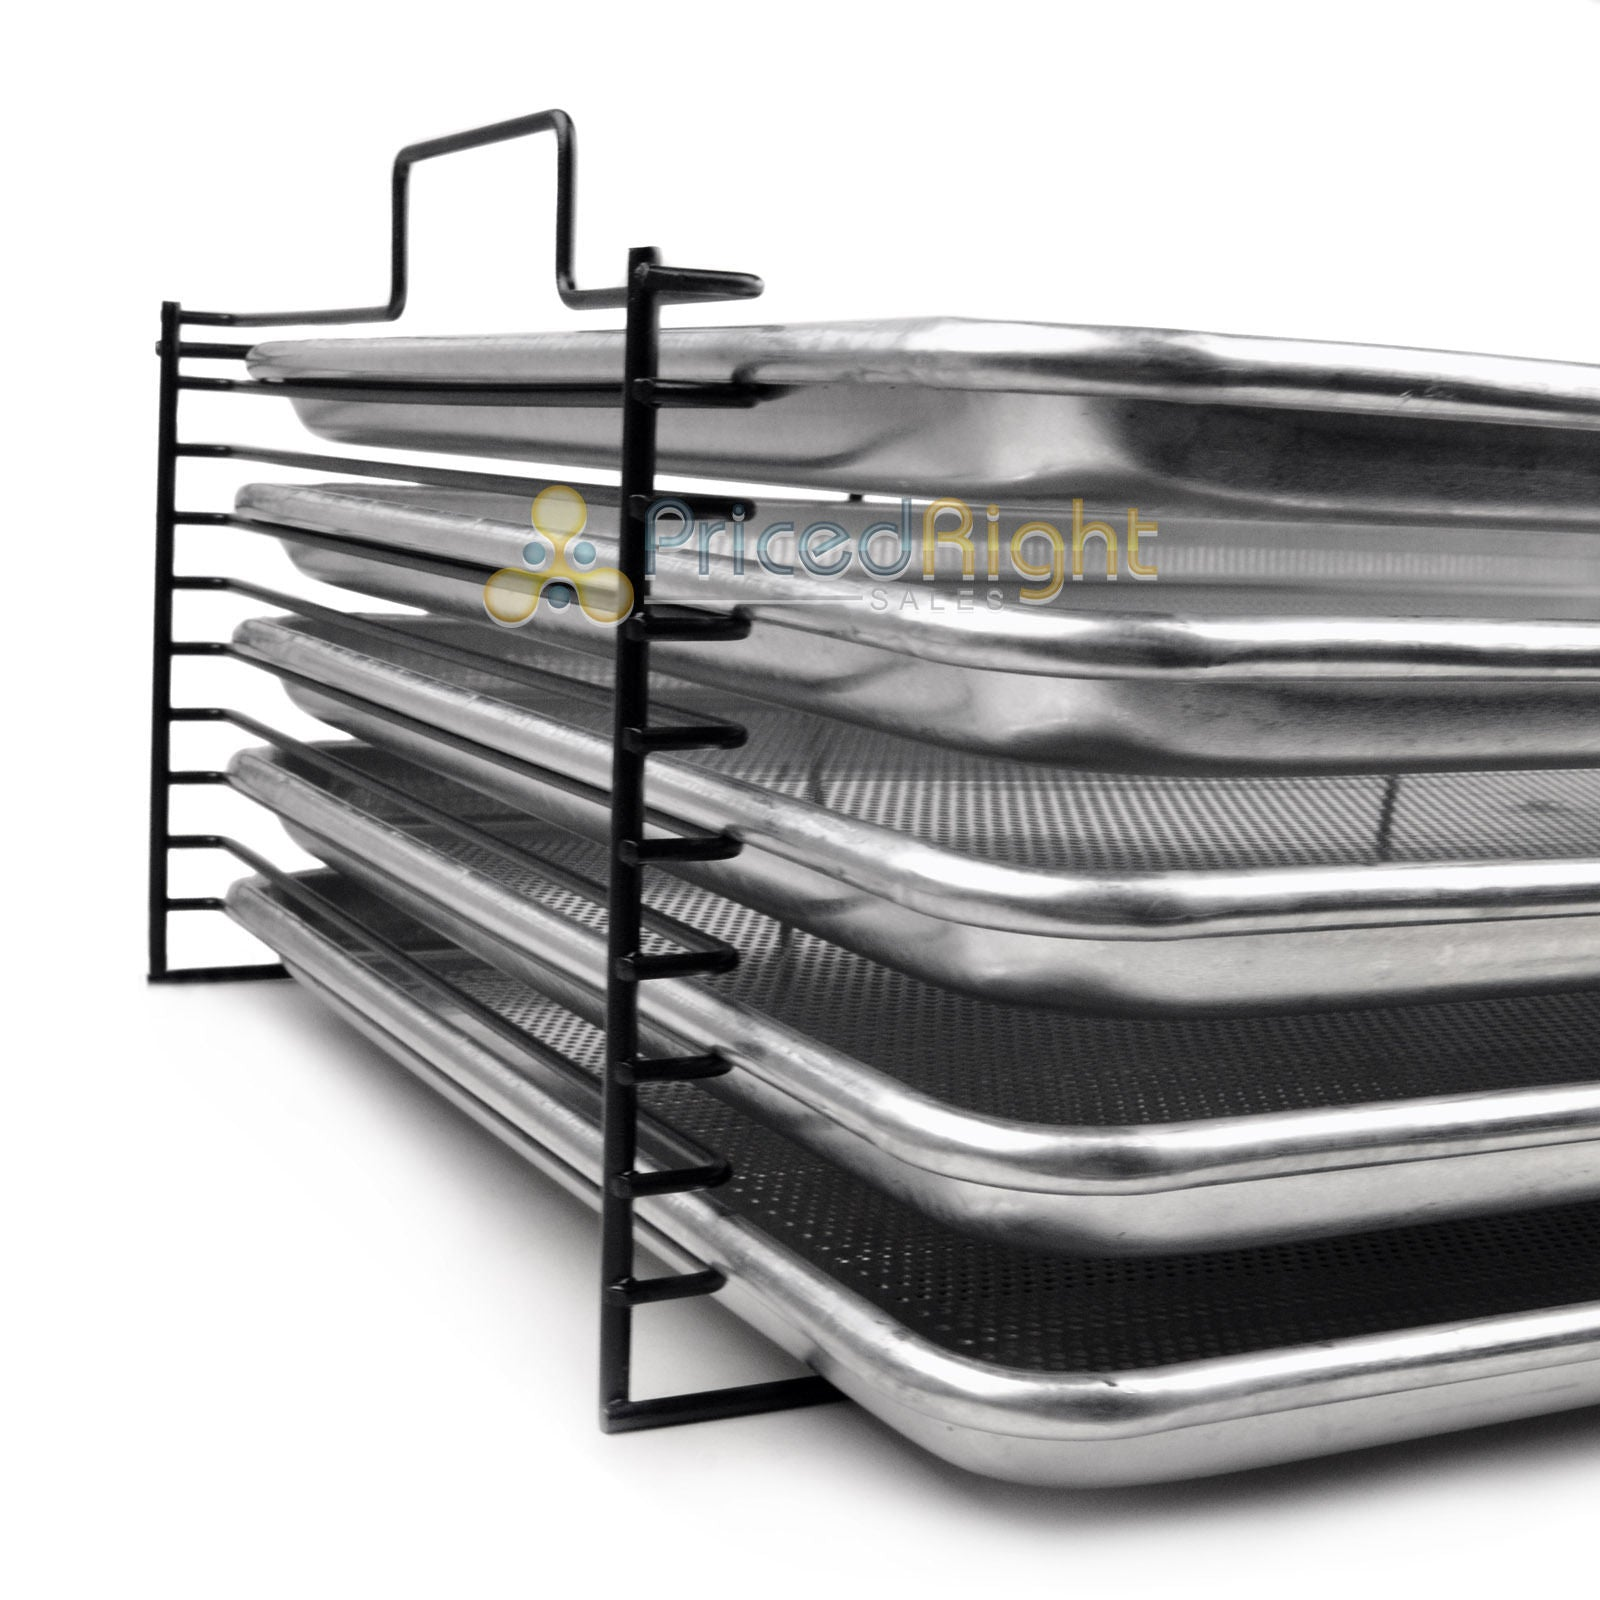 New Bull Rack Grill Tray System BR5 Grilling More Space Jerky Fish Pizza New